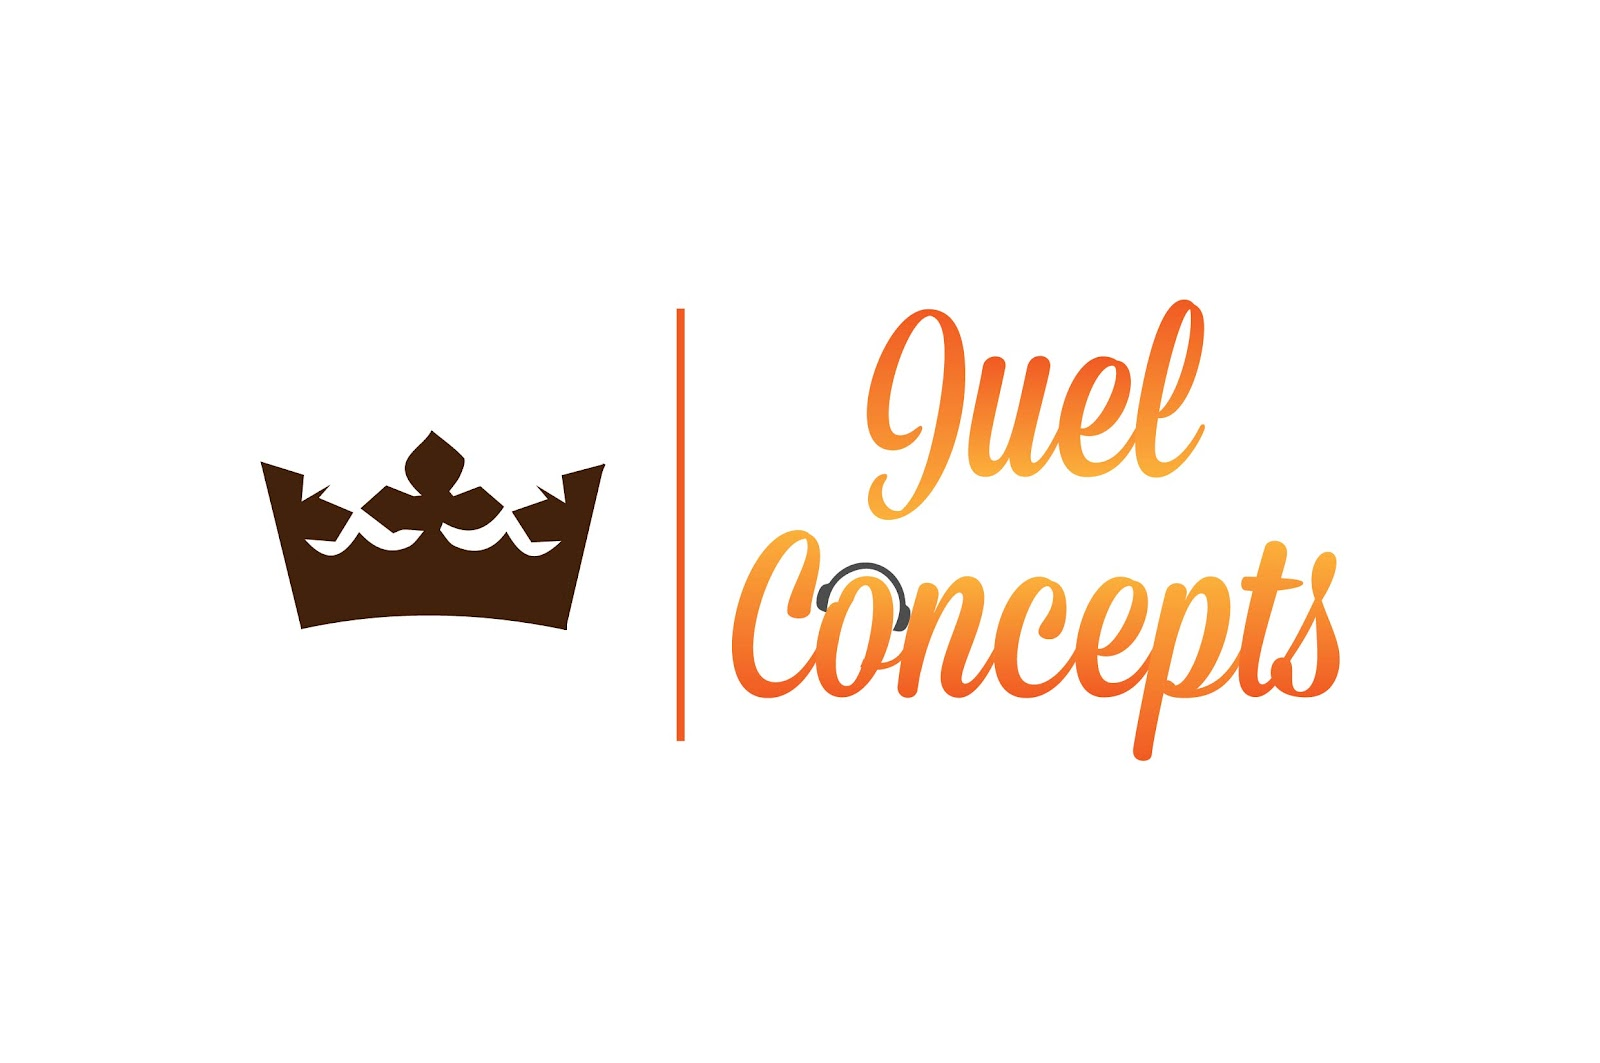 juel concepts logo FINAL 2015.jpg